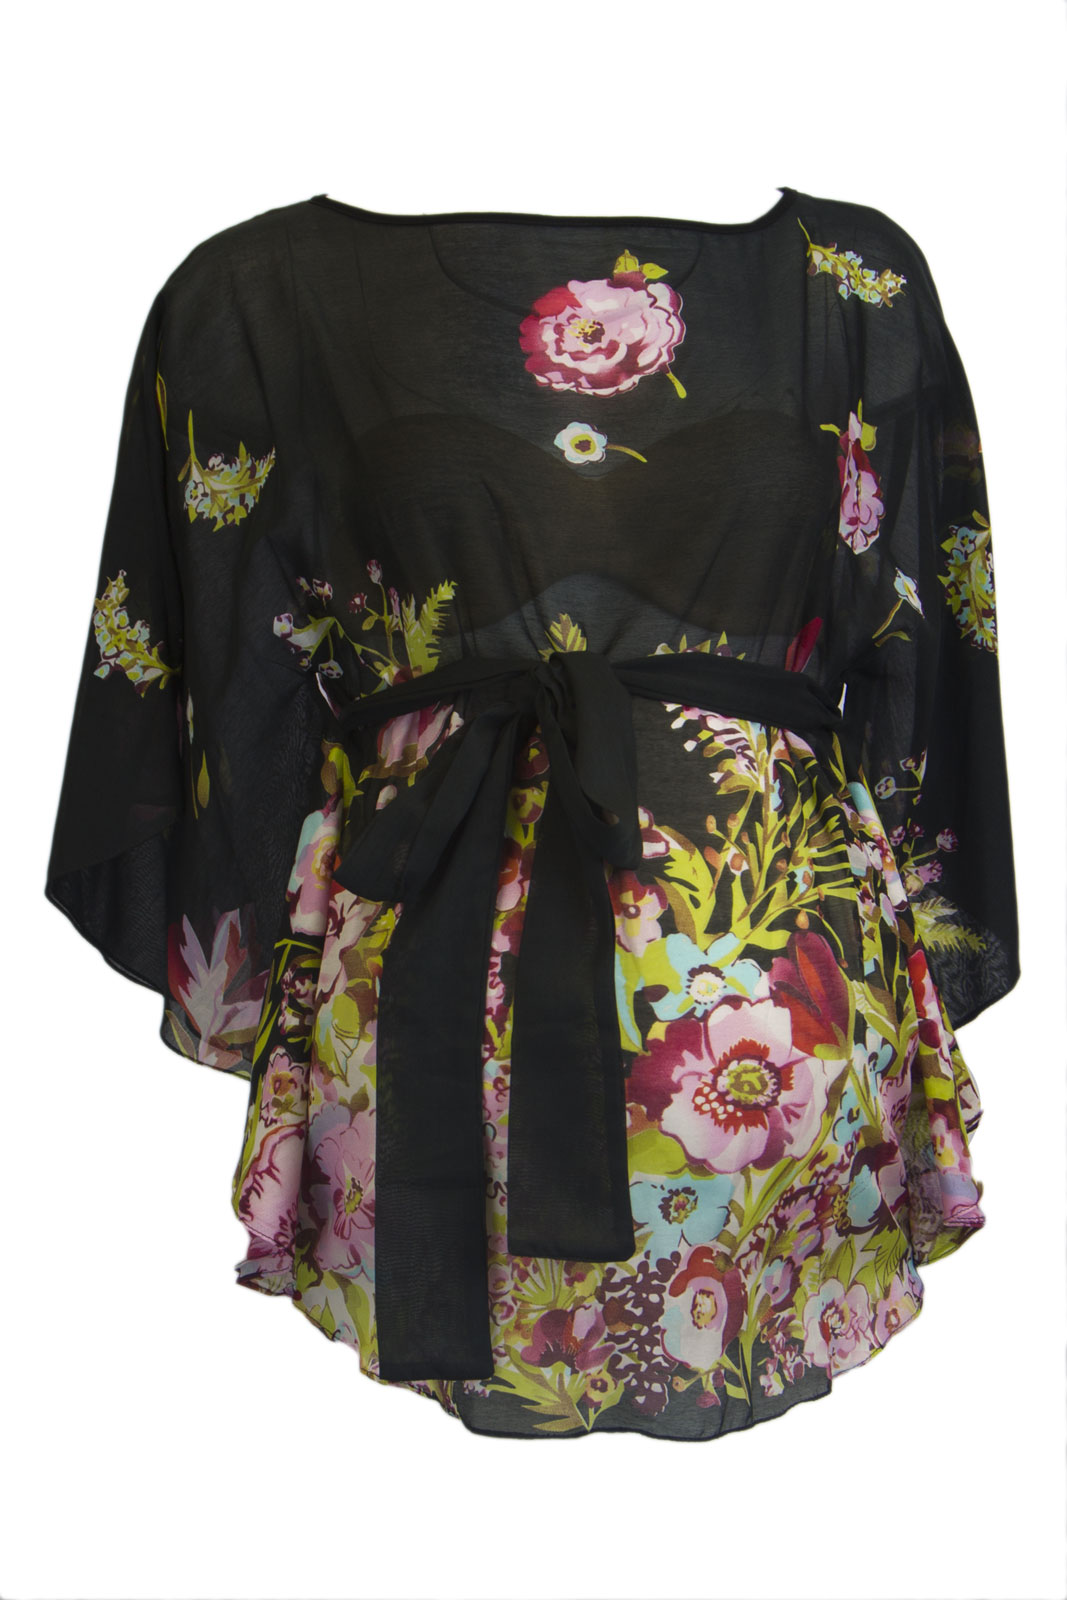 OLIAN Maternity Women's Floral Print Boat Nweck Batwing Top X-Small Black